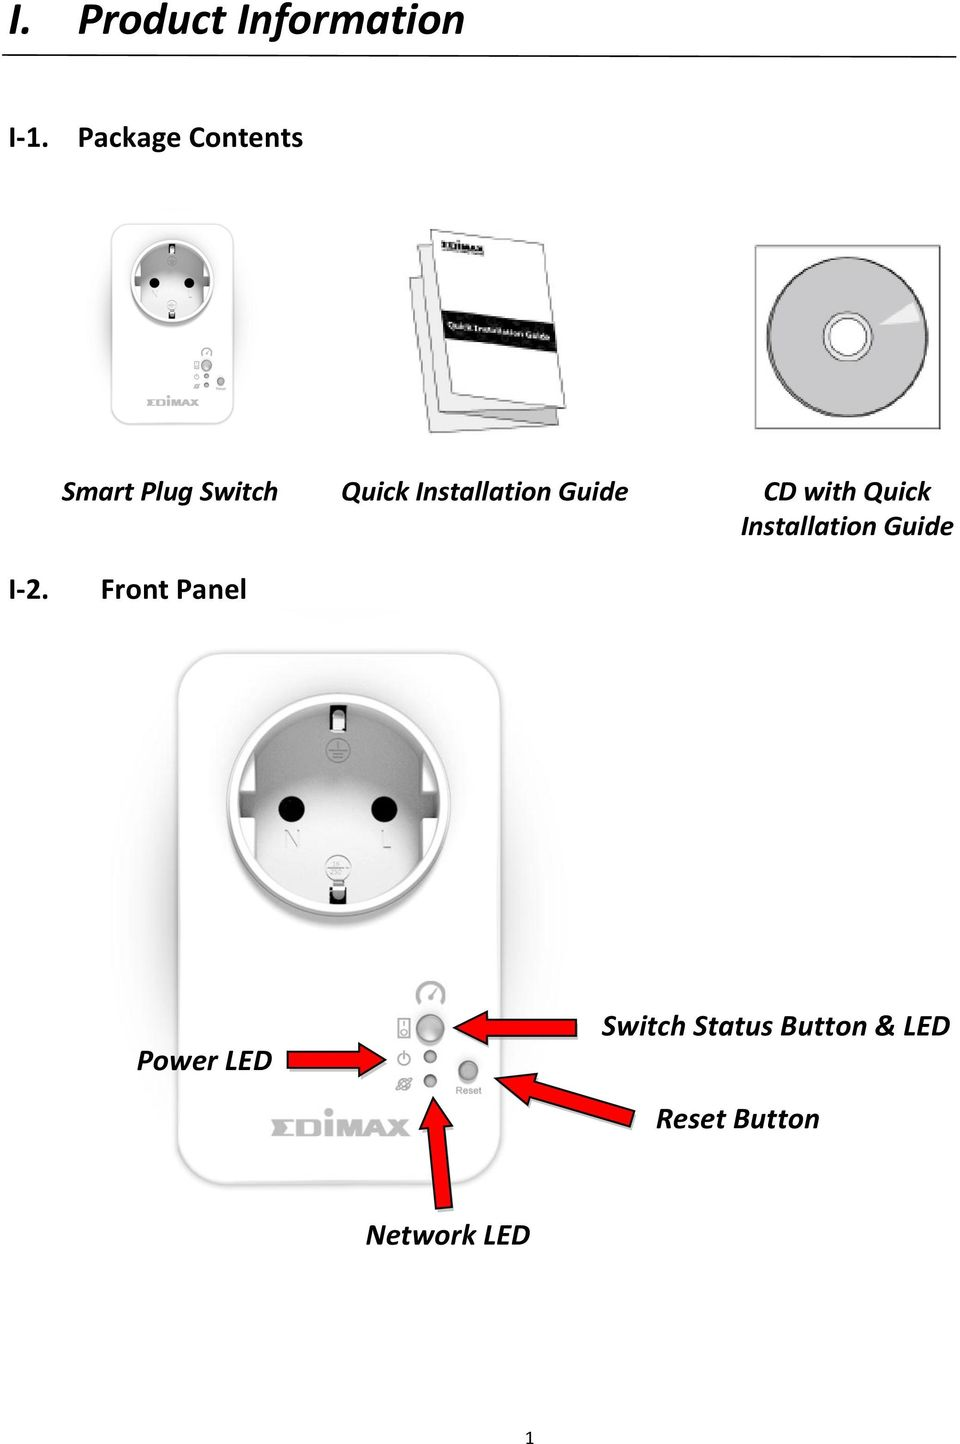 Installation Guide CD with Quick Installation